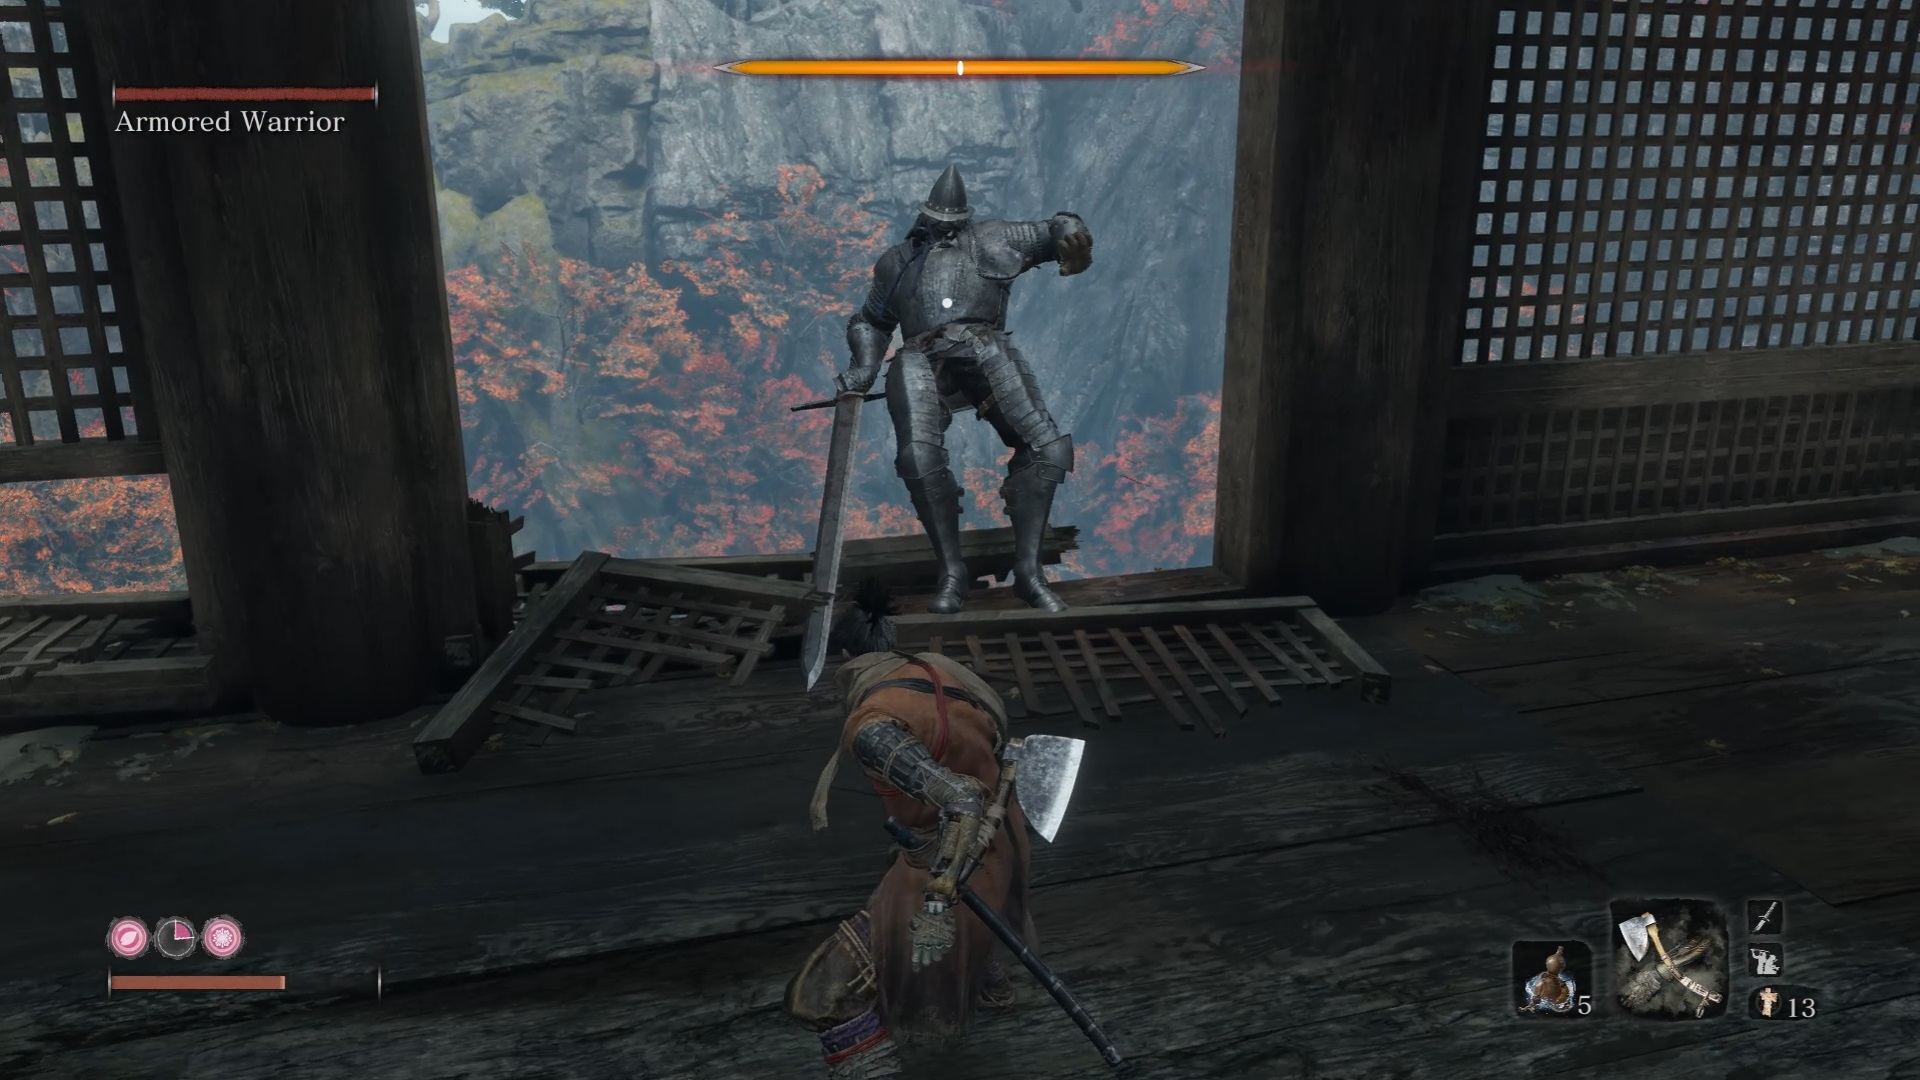 The Armored Knight has been staggered by a posture break. He's about to comically fall out of a window he made.